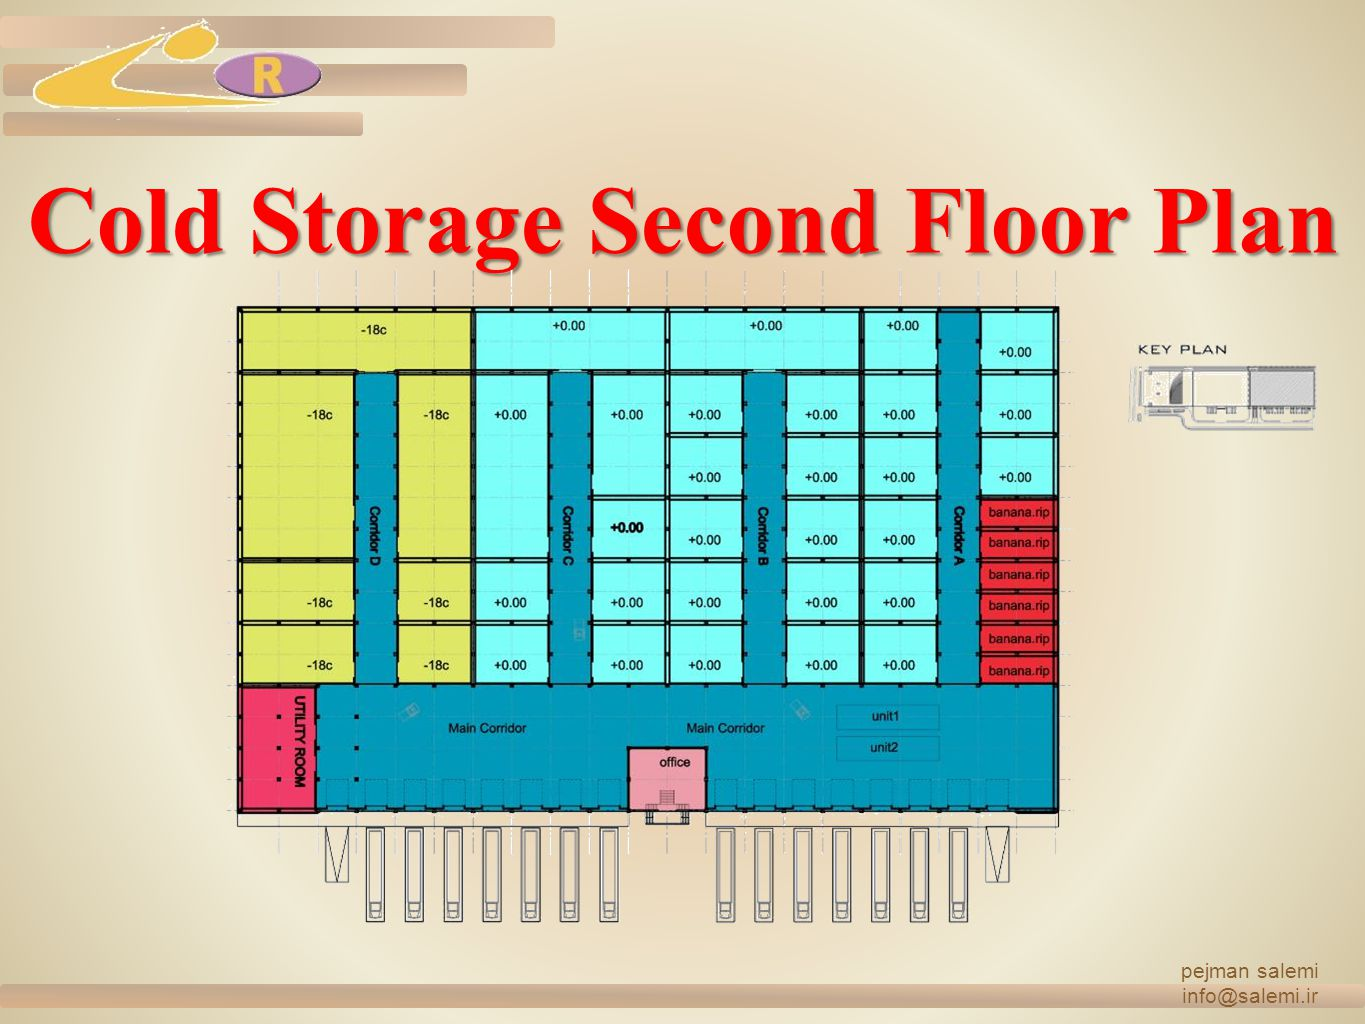 Cold Storage Second Floor Plan